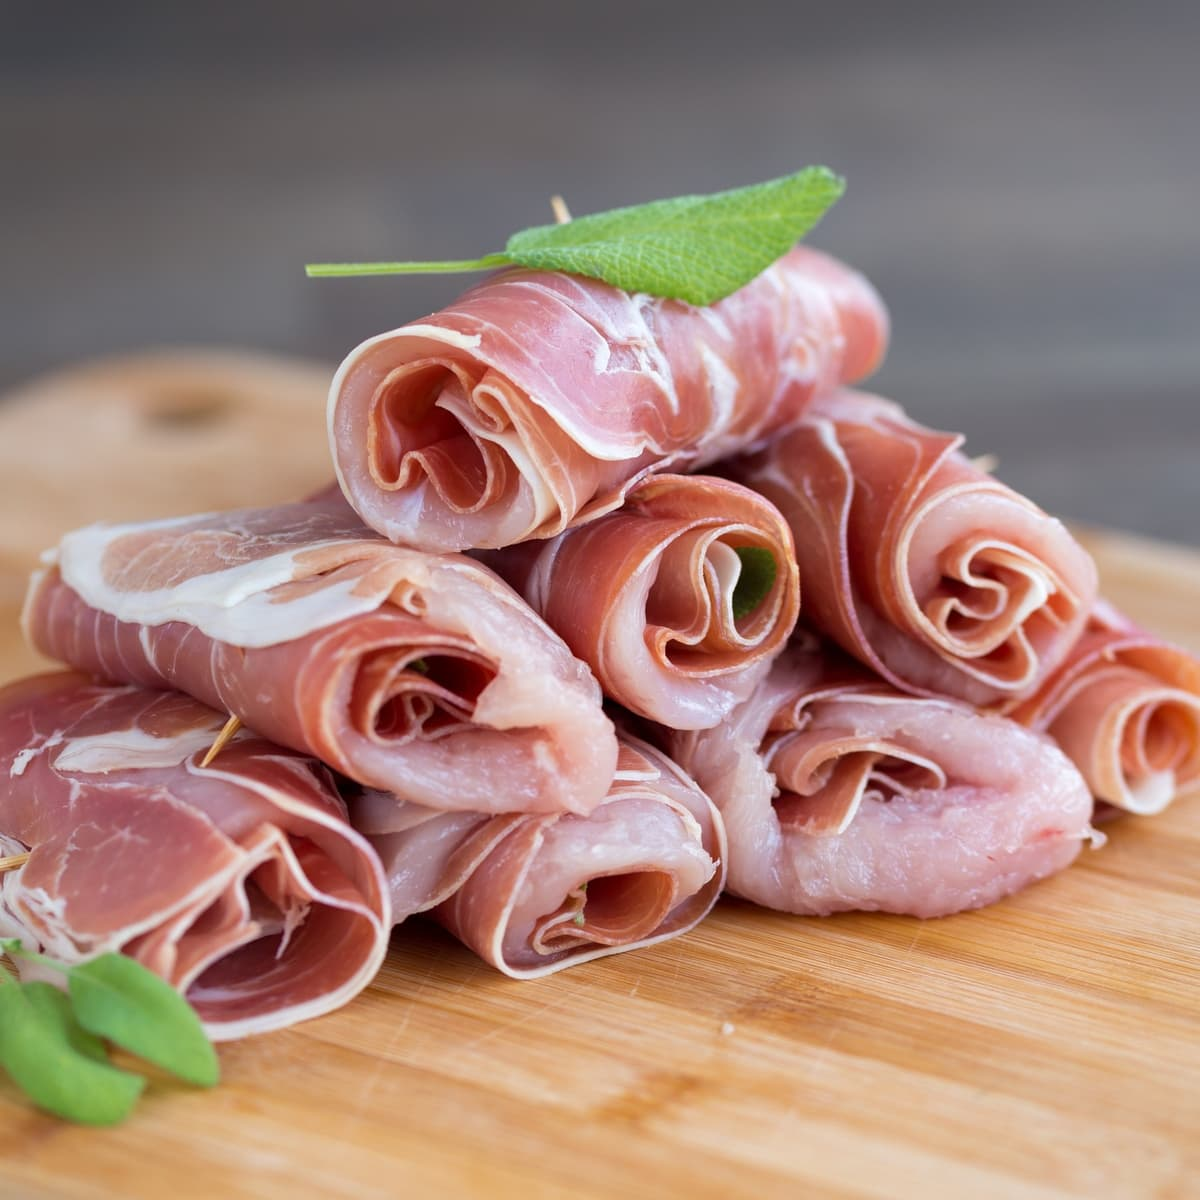 Rolled up raw chicken prosciutto involtini.